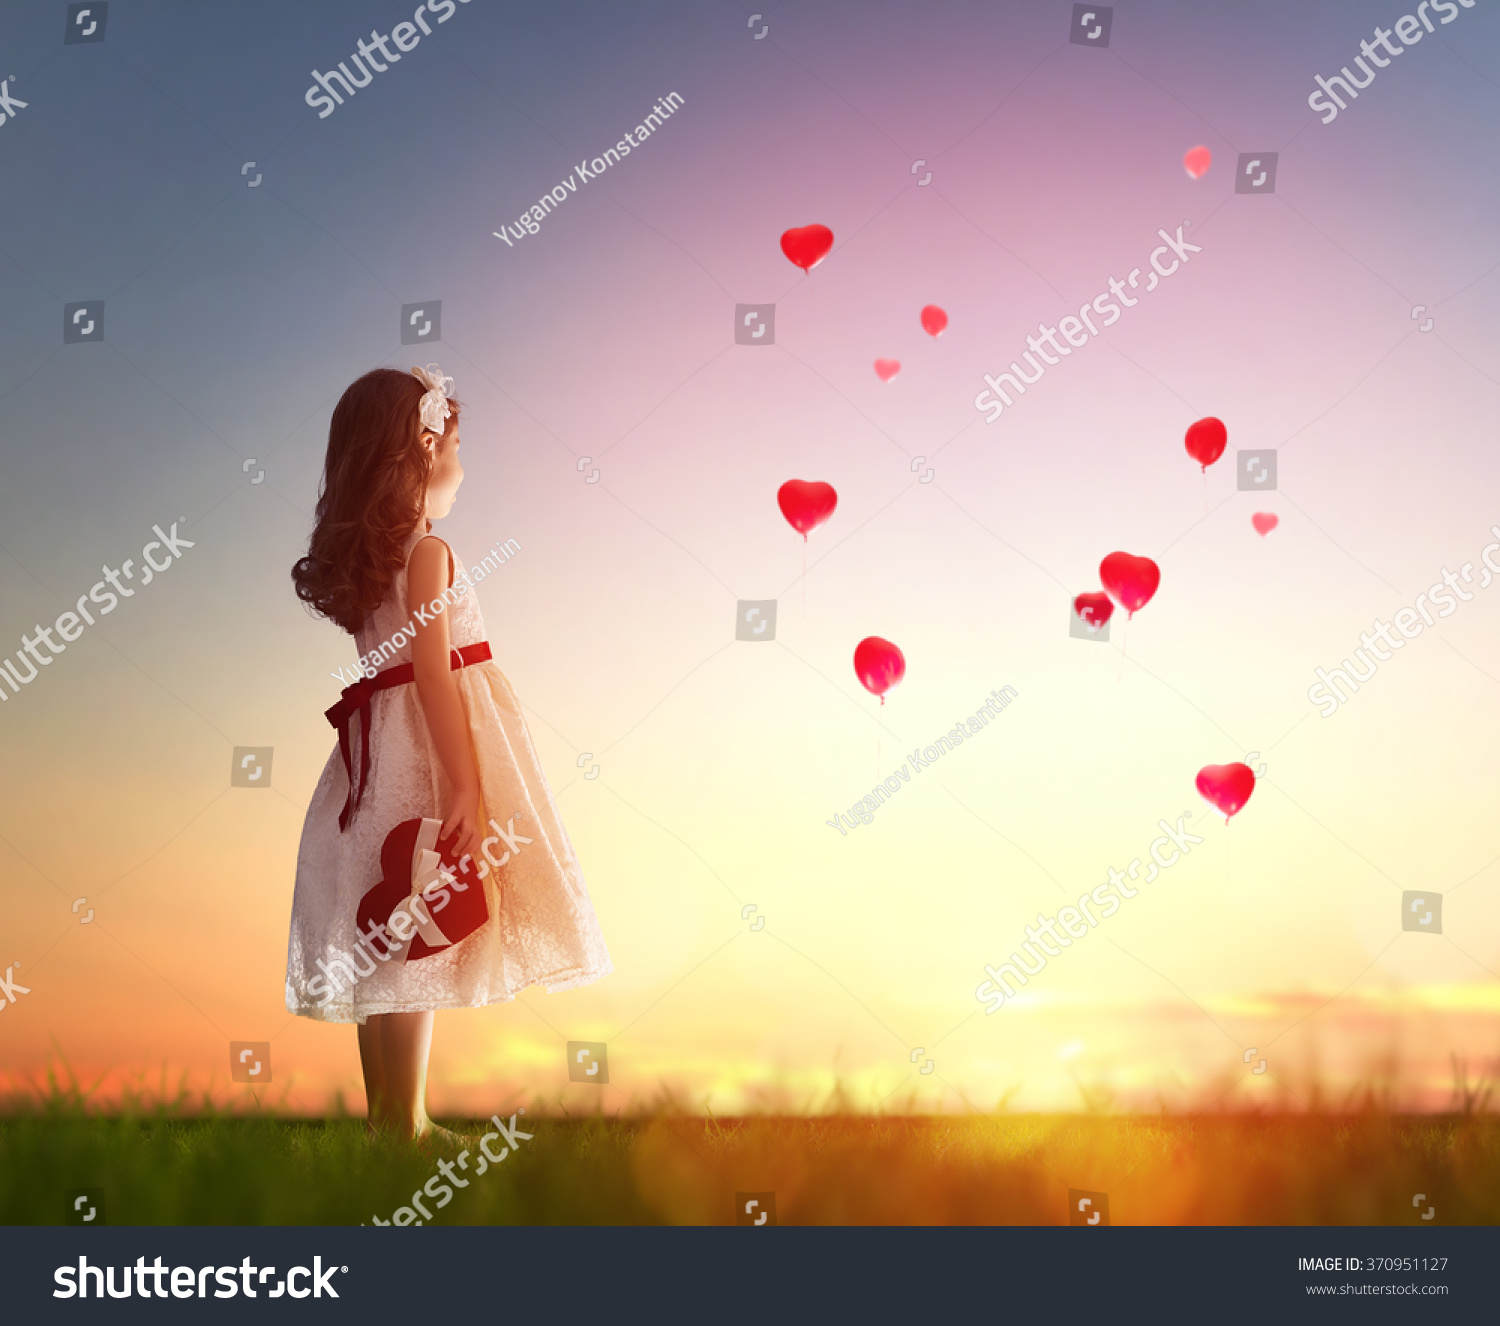 Sweet child girl looking at red balloons Balloons in shape of heart flying in the sunset sky Wedding Valentine love concept